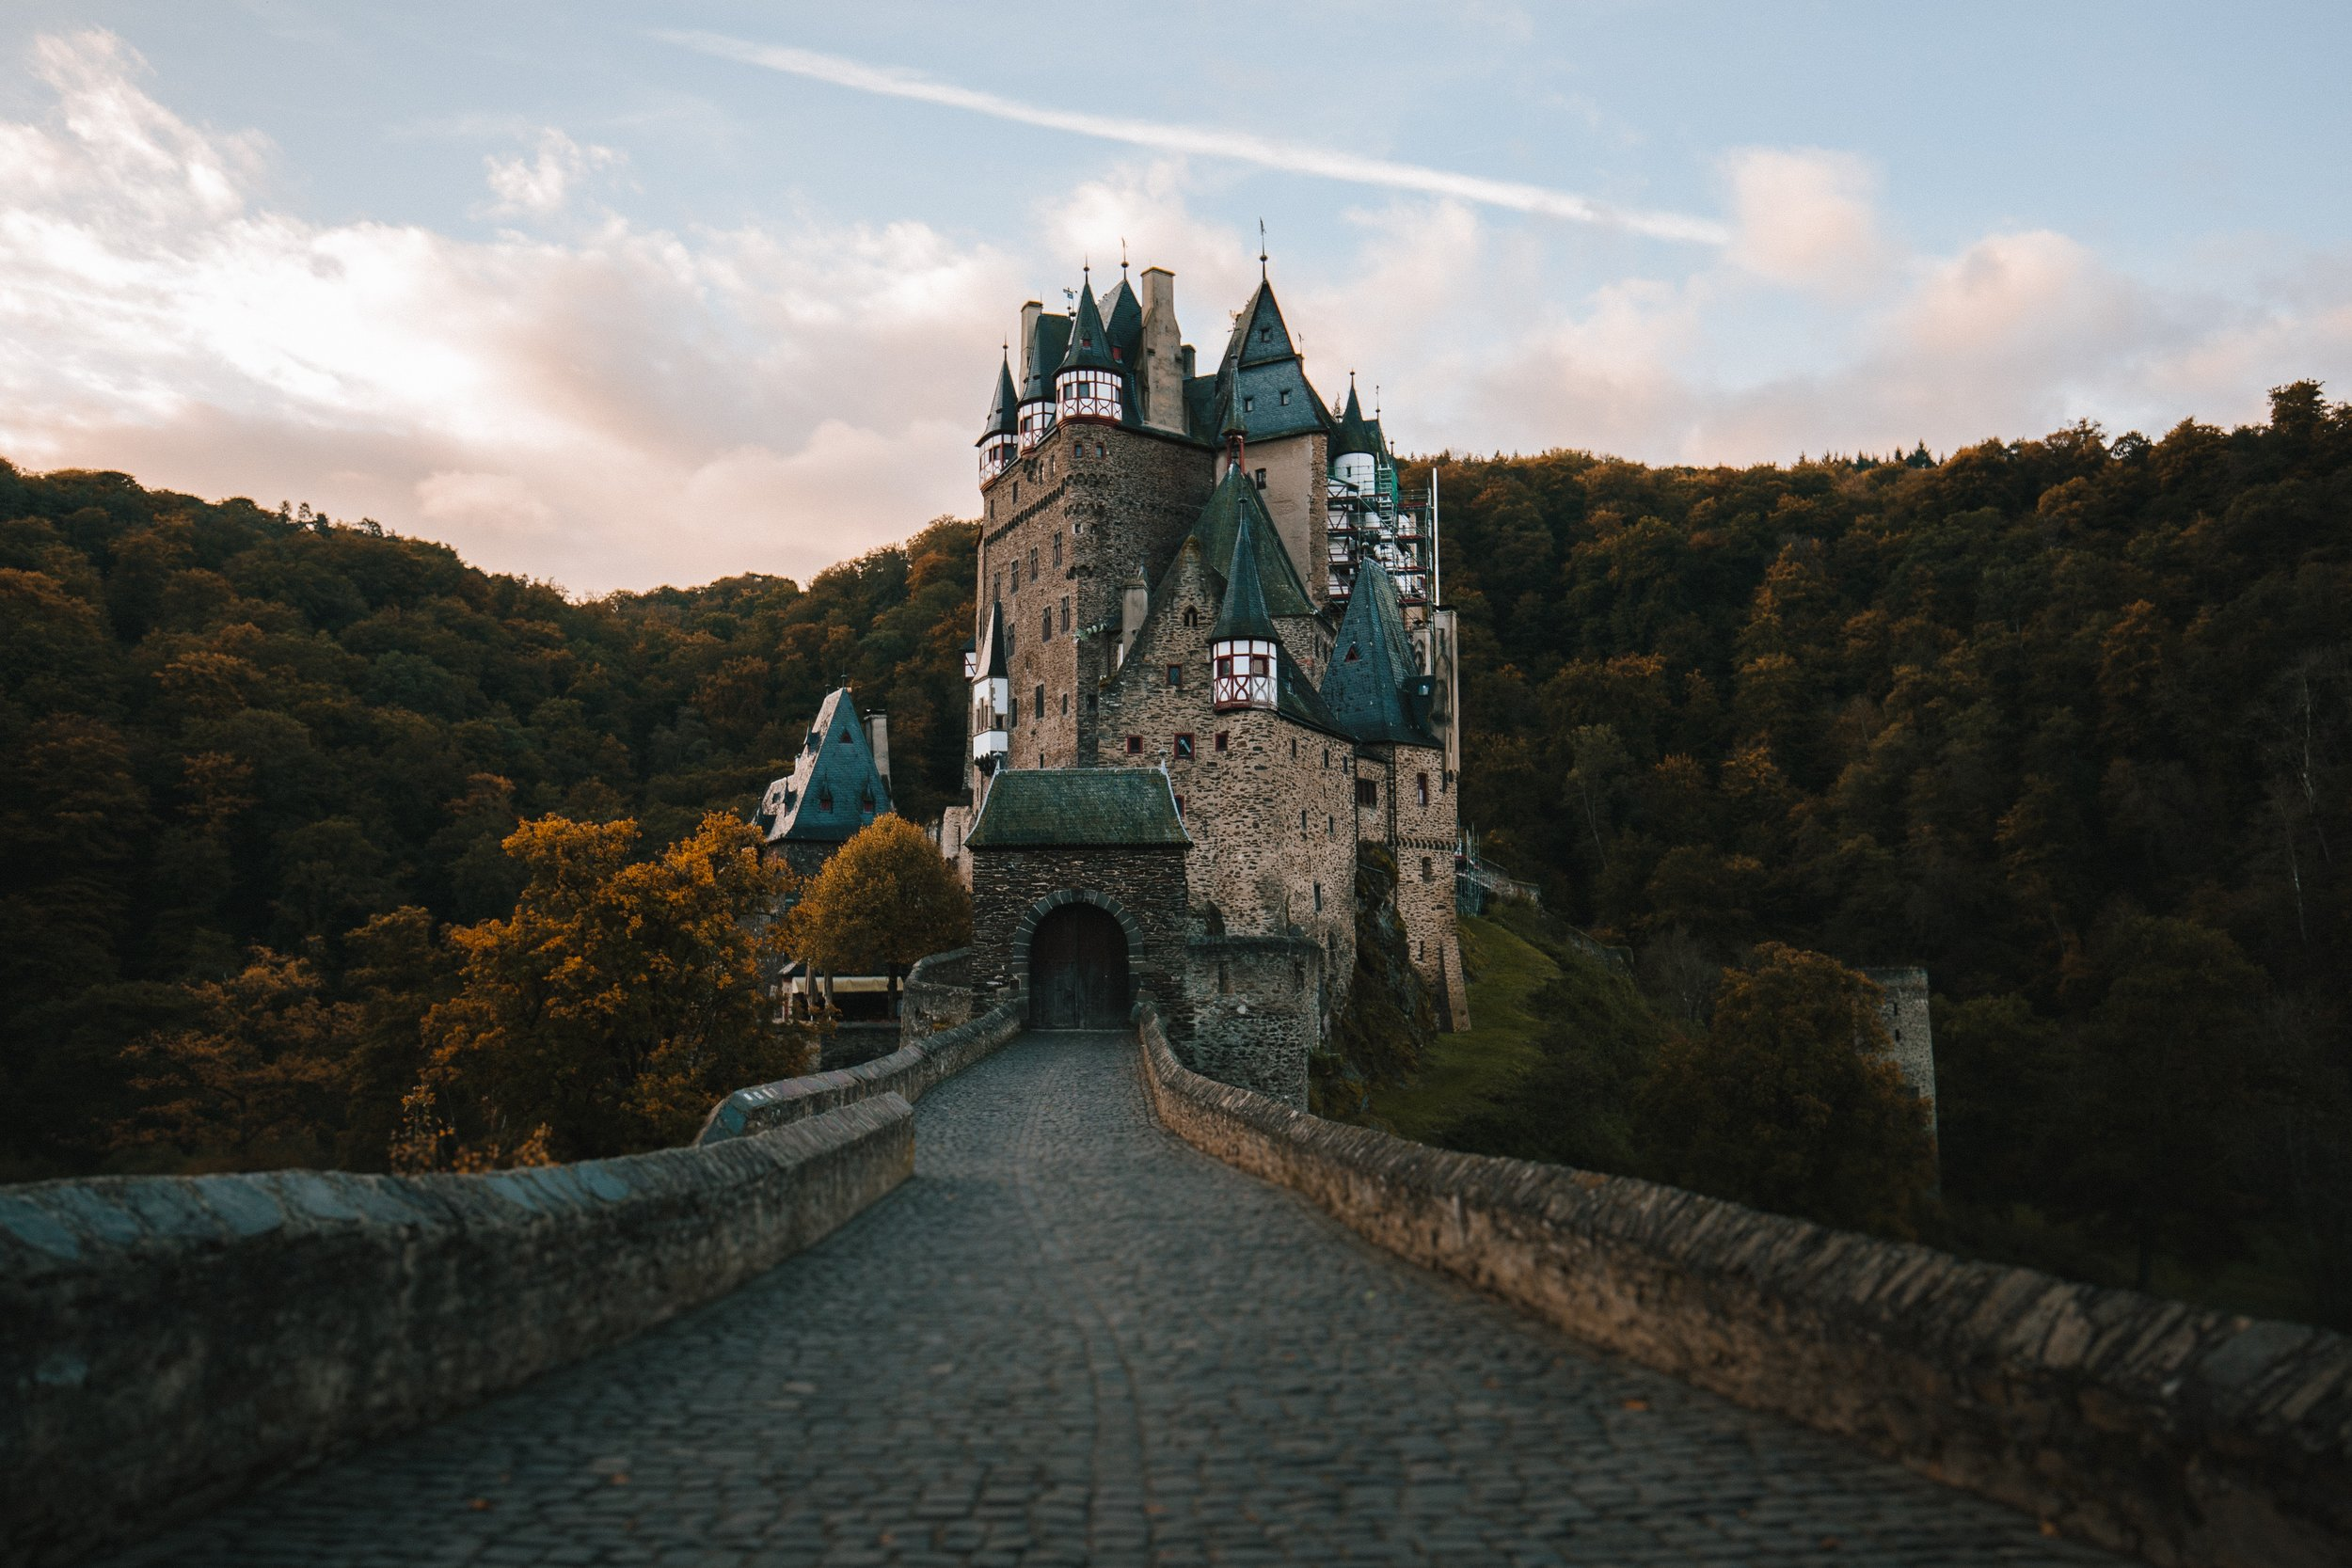 Fairy tale castle at the end of a cobbled street.